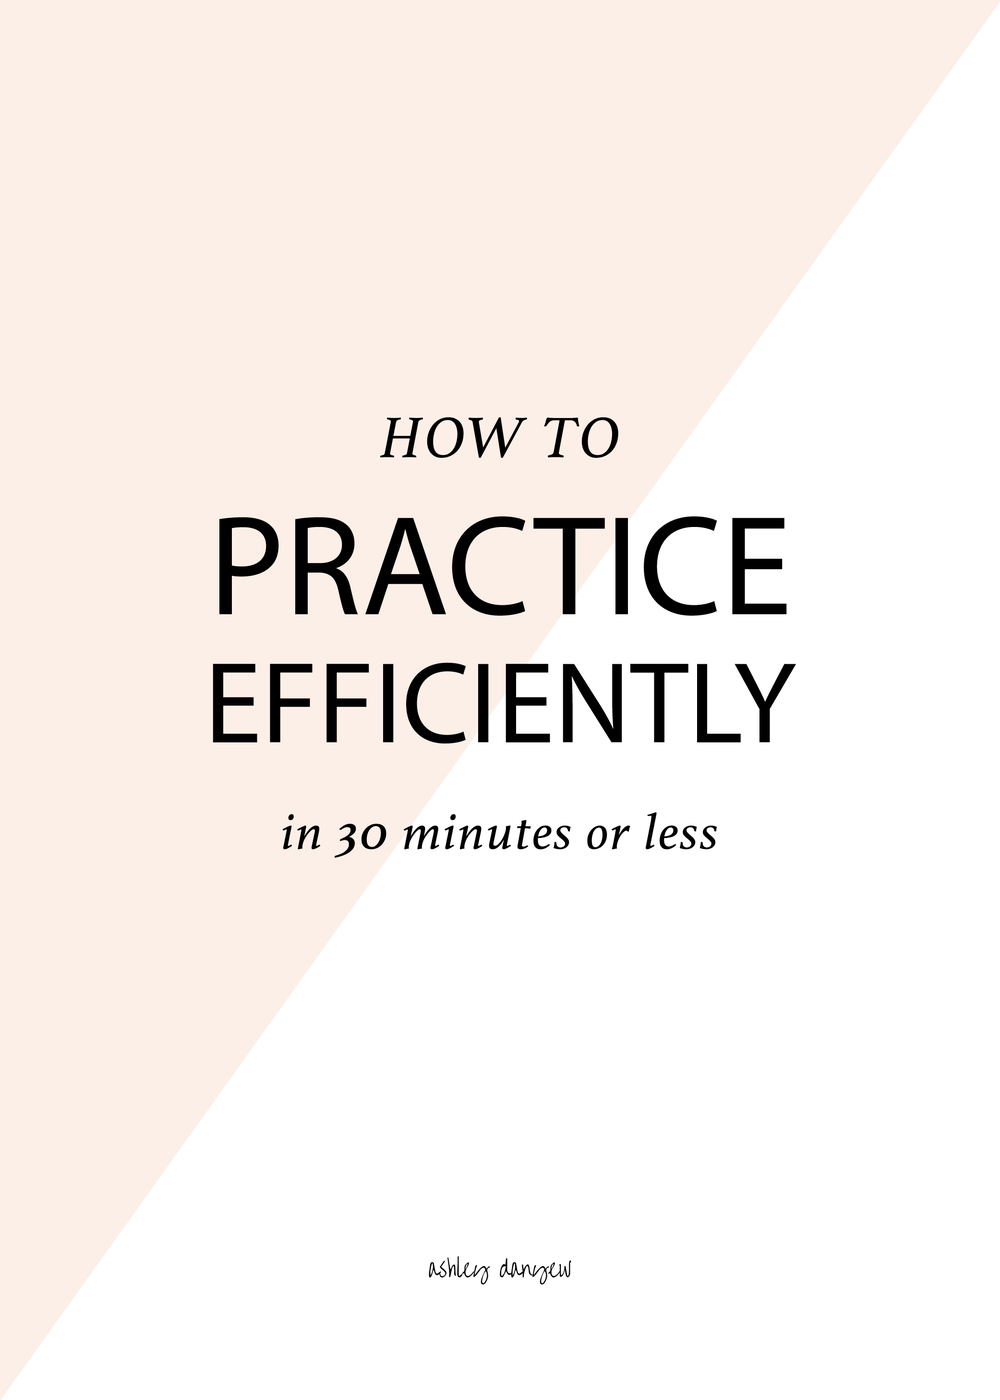 Copy of How to Practice Efficiently in 30 Minutes Or Less